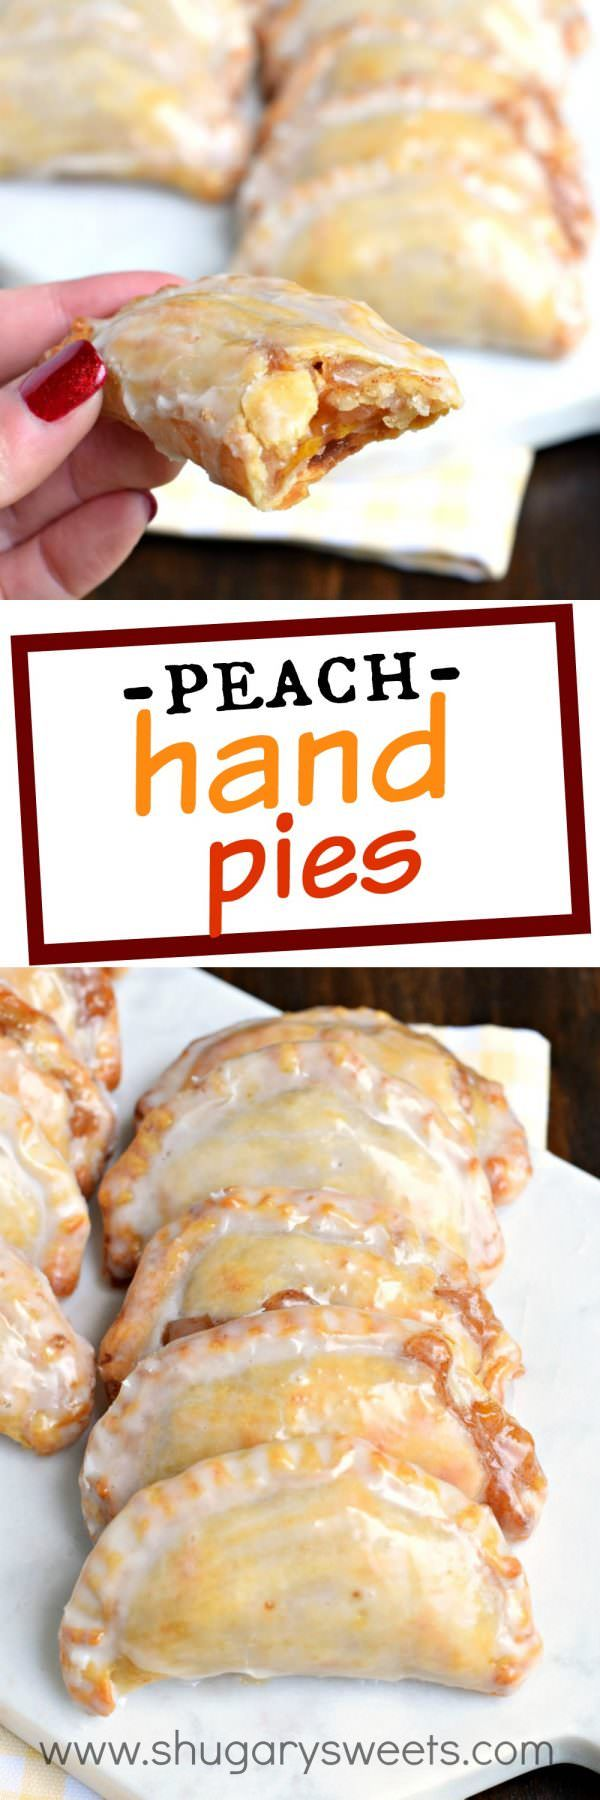 Baked goods clipart fruit cobbler.  best peaches and